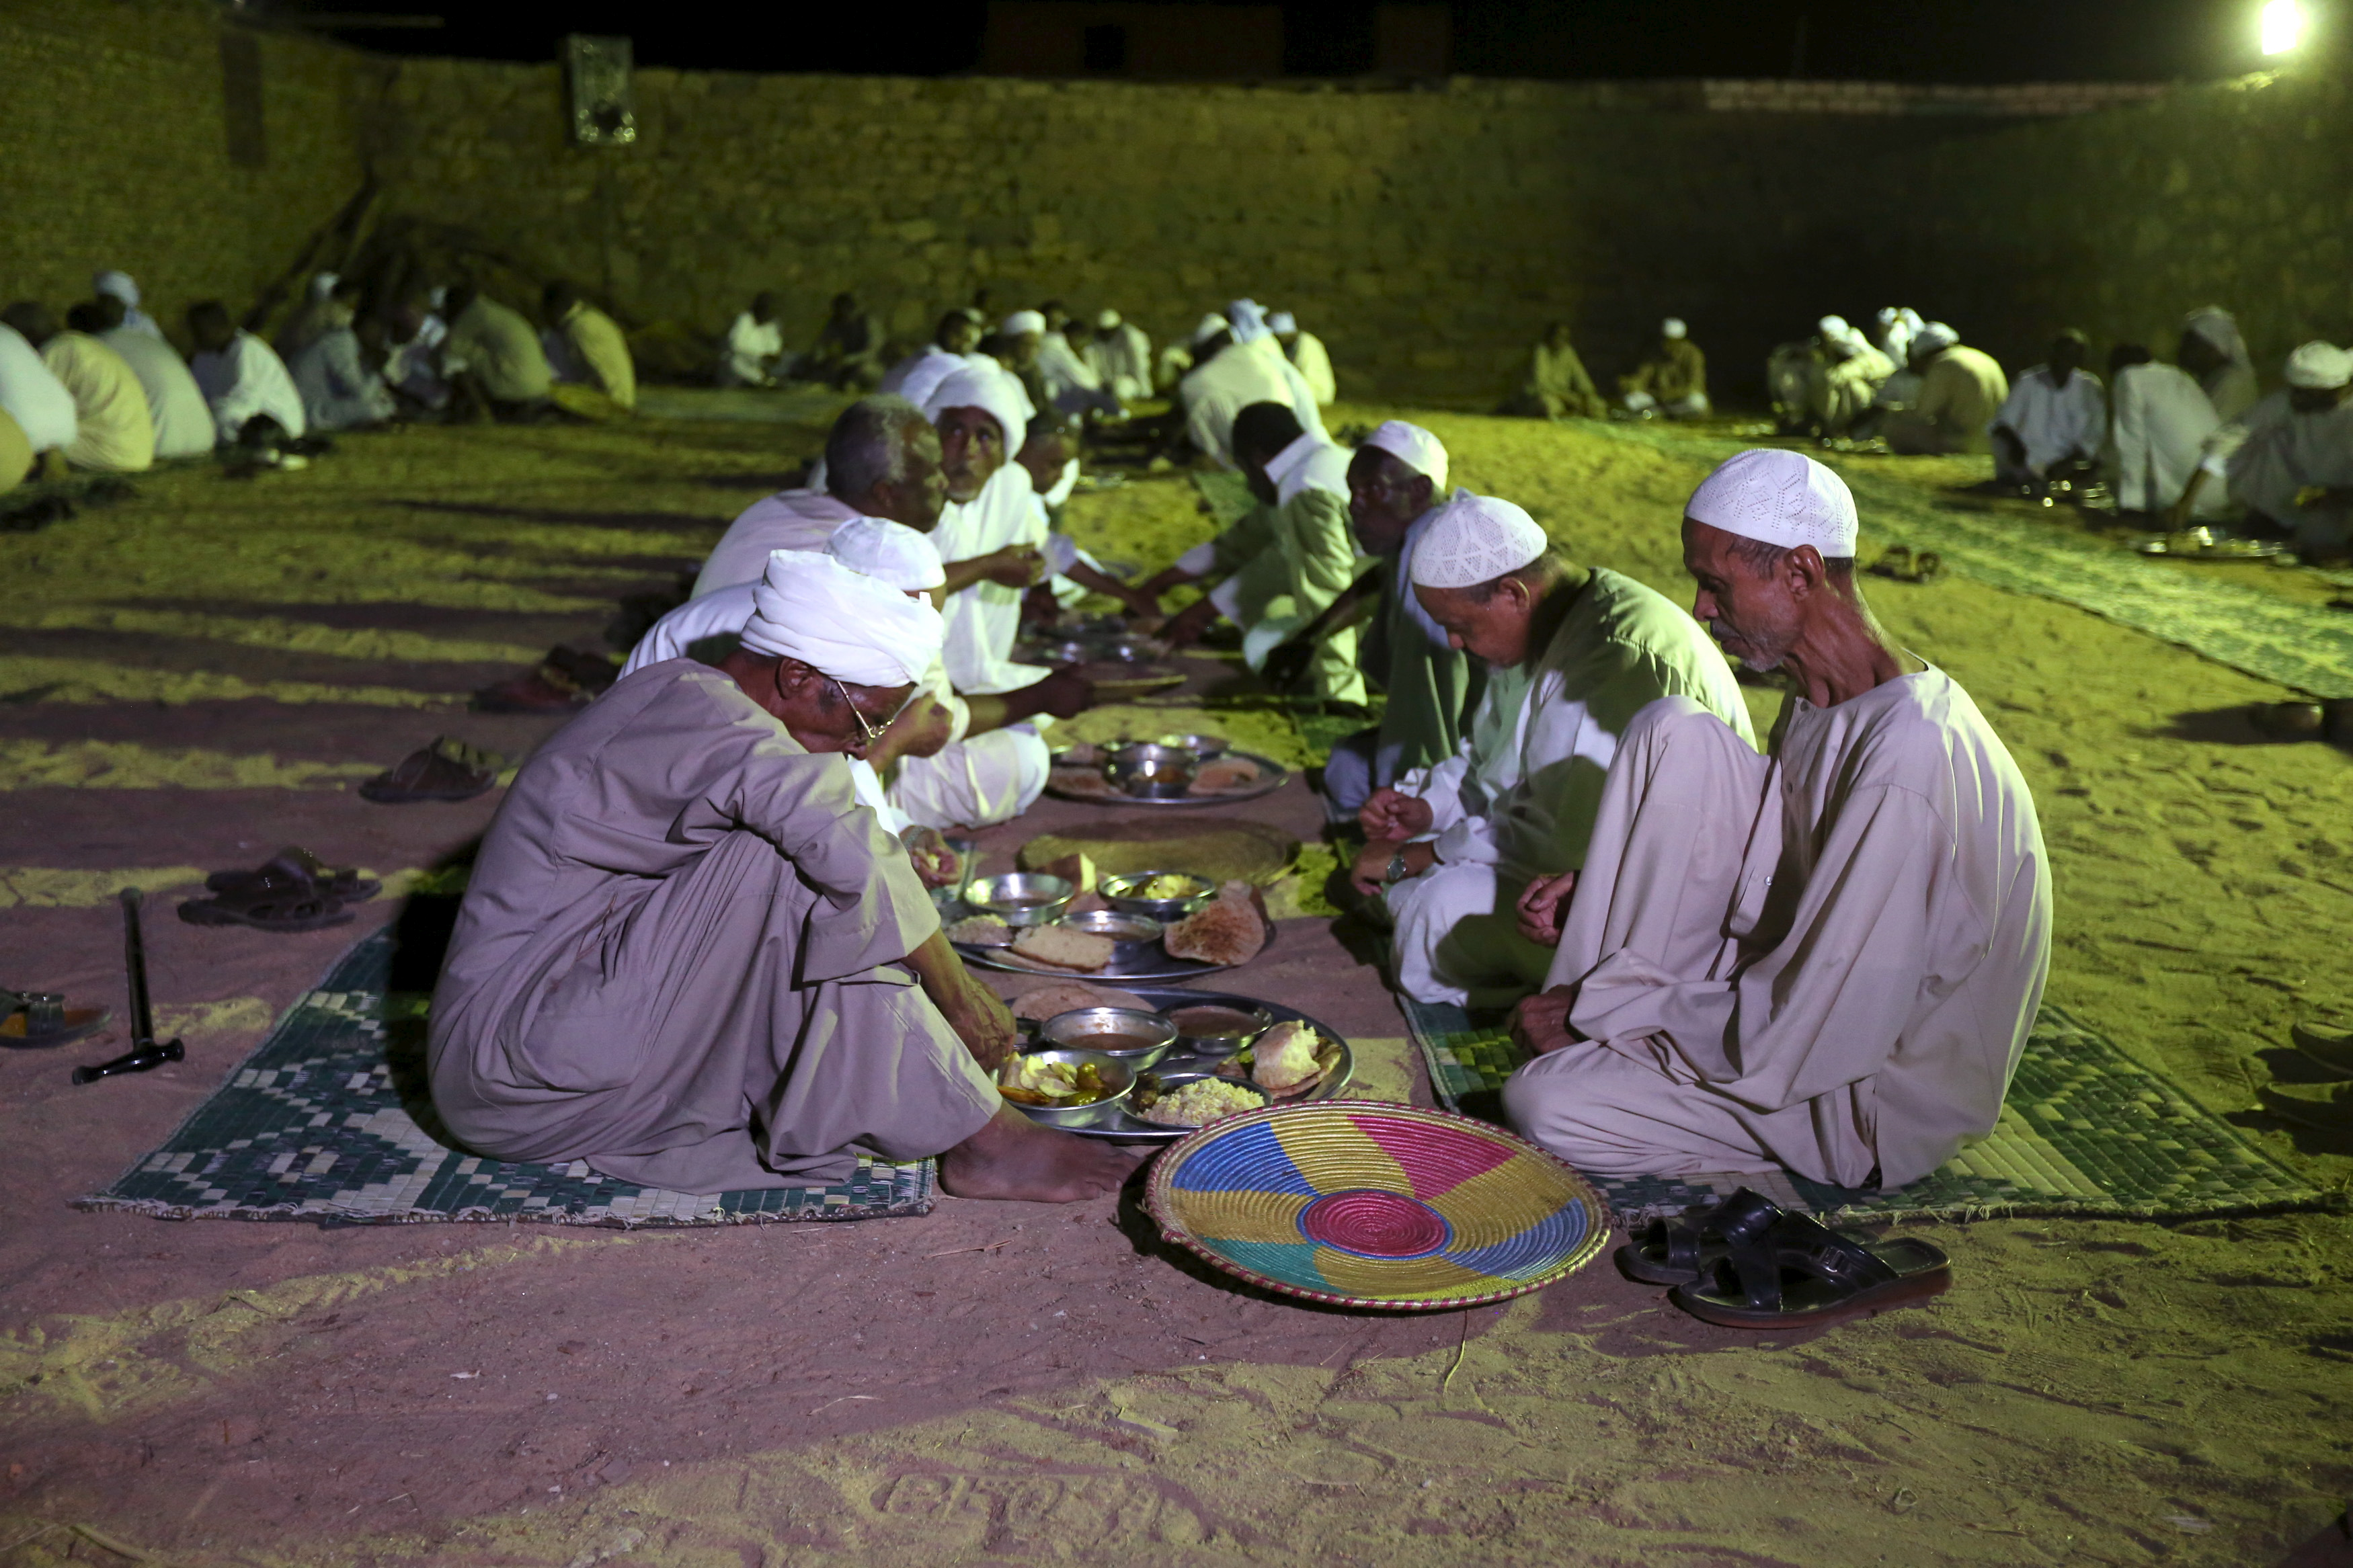 Invitees eat dinner as people celebrate a traditional Nubian wedding in the Nubian village of Adindan on Sept. 30, 2015.